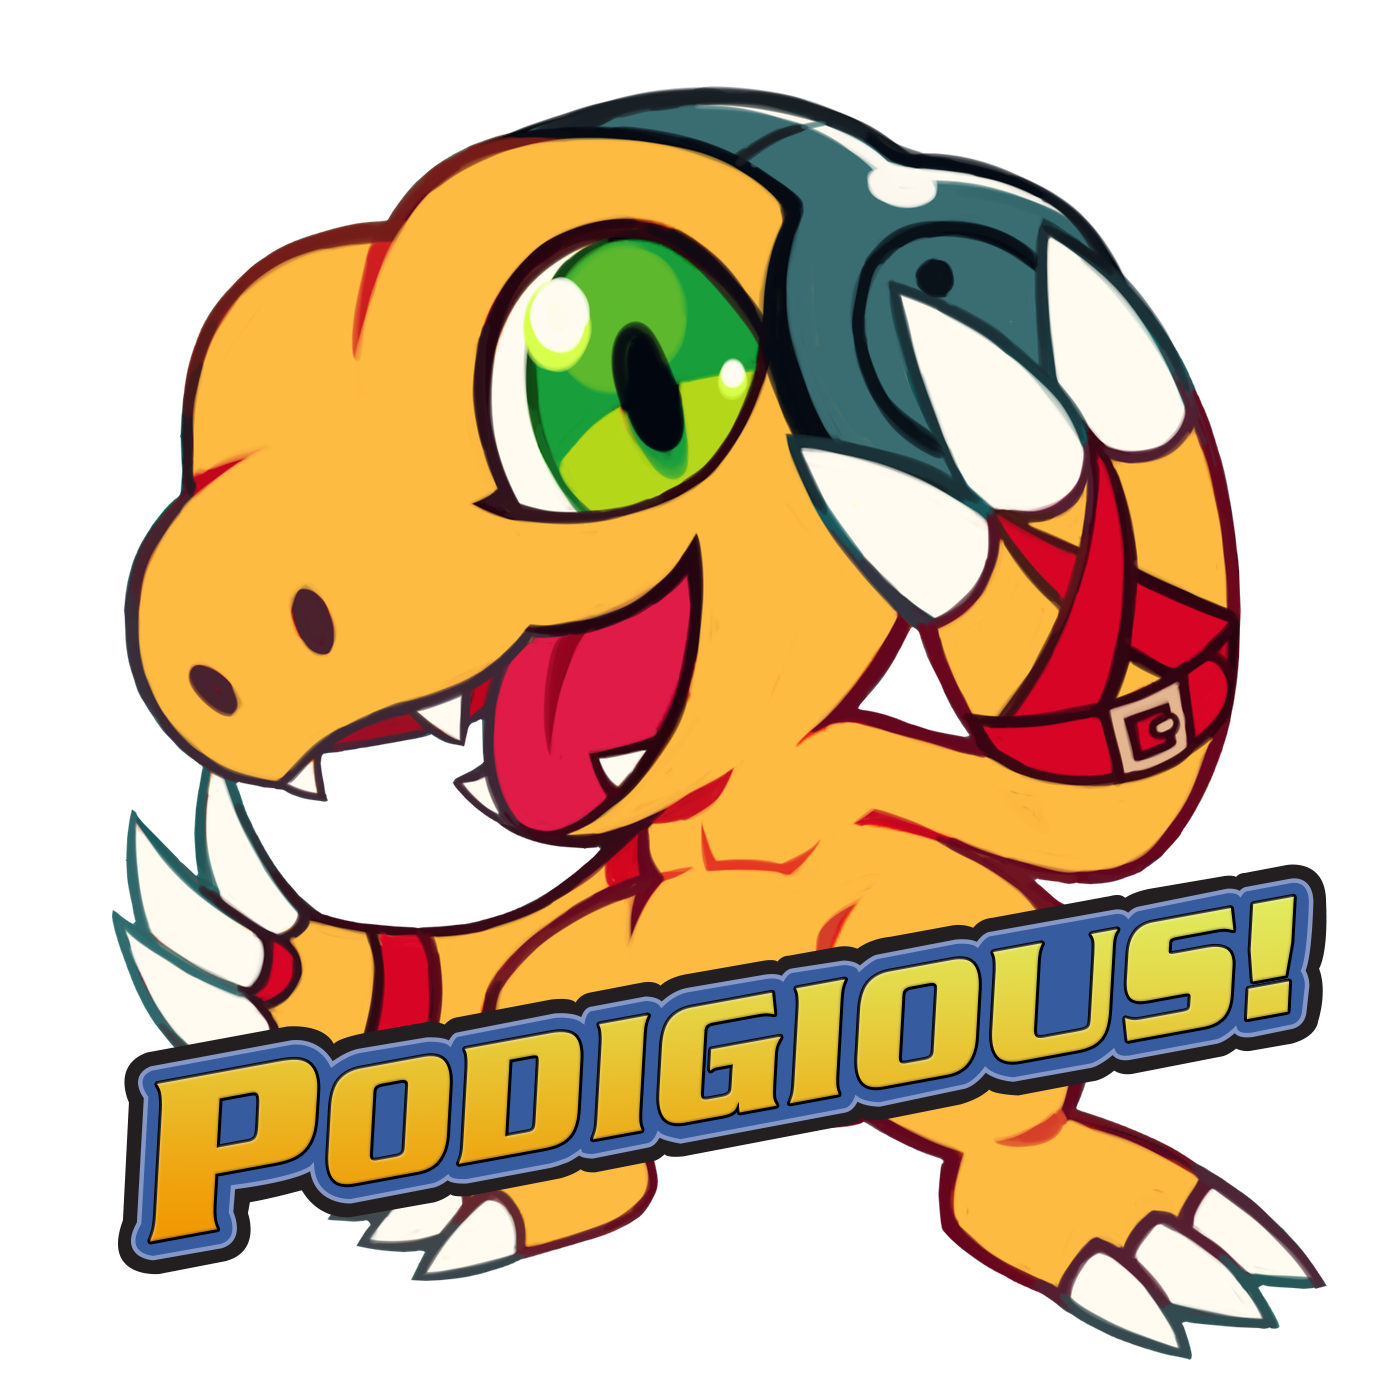 Podigious a digimon podcast. Geology clipart pond dipping